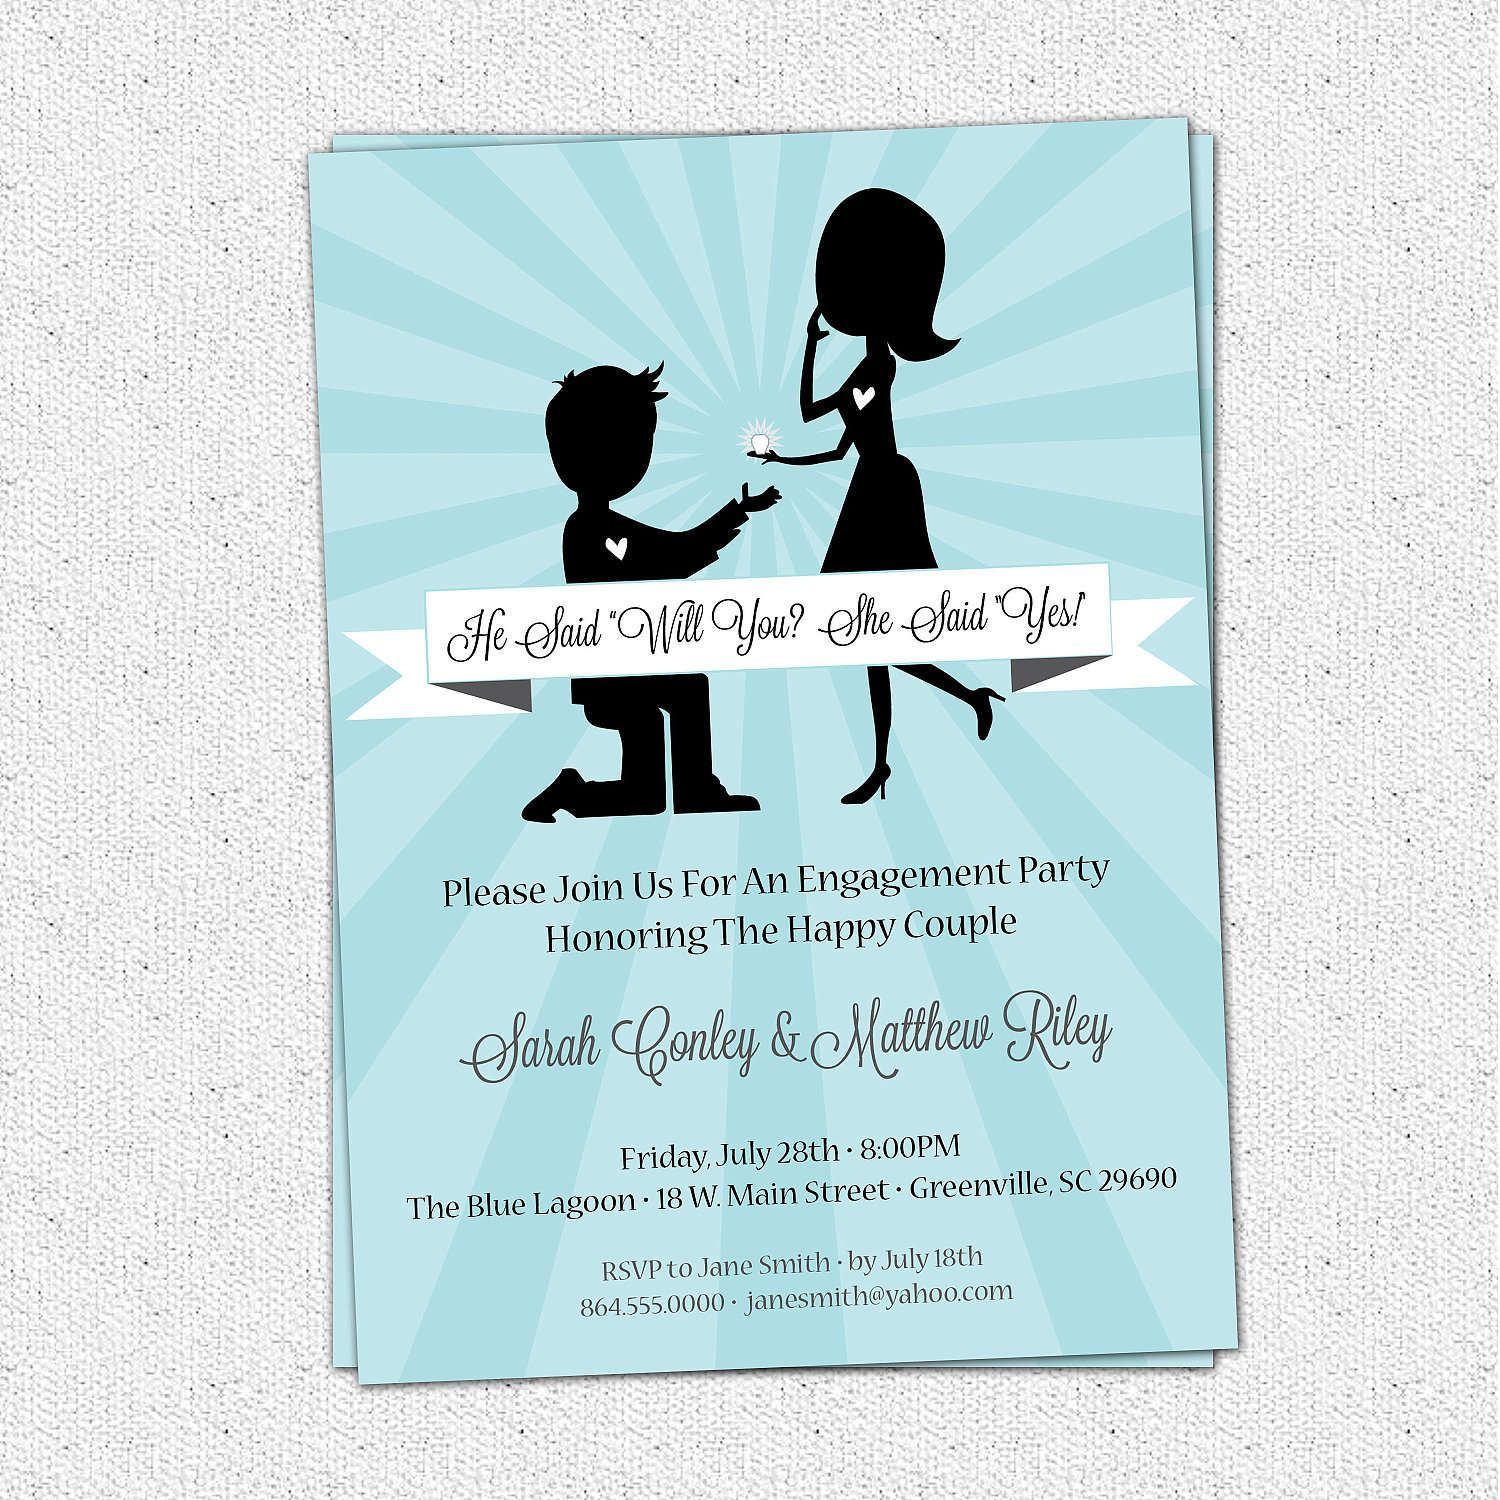 engagement party invitation templates – Engagement Party Template